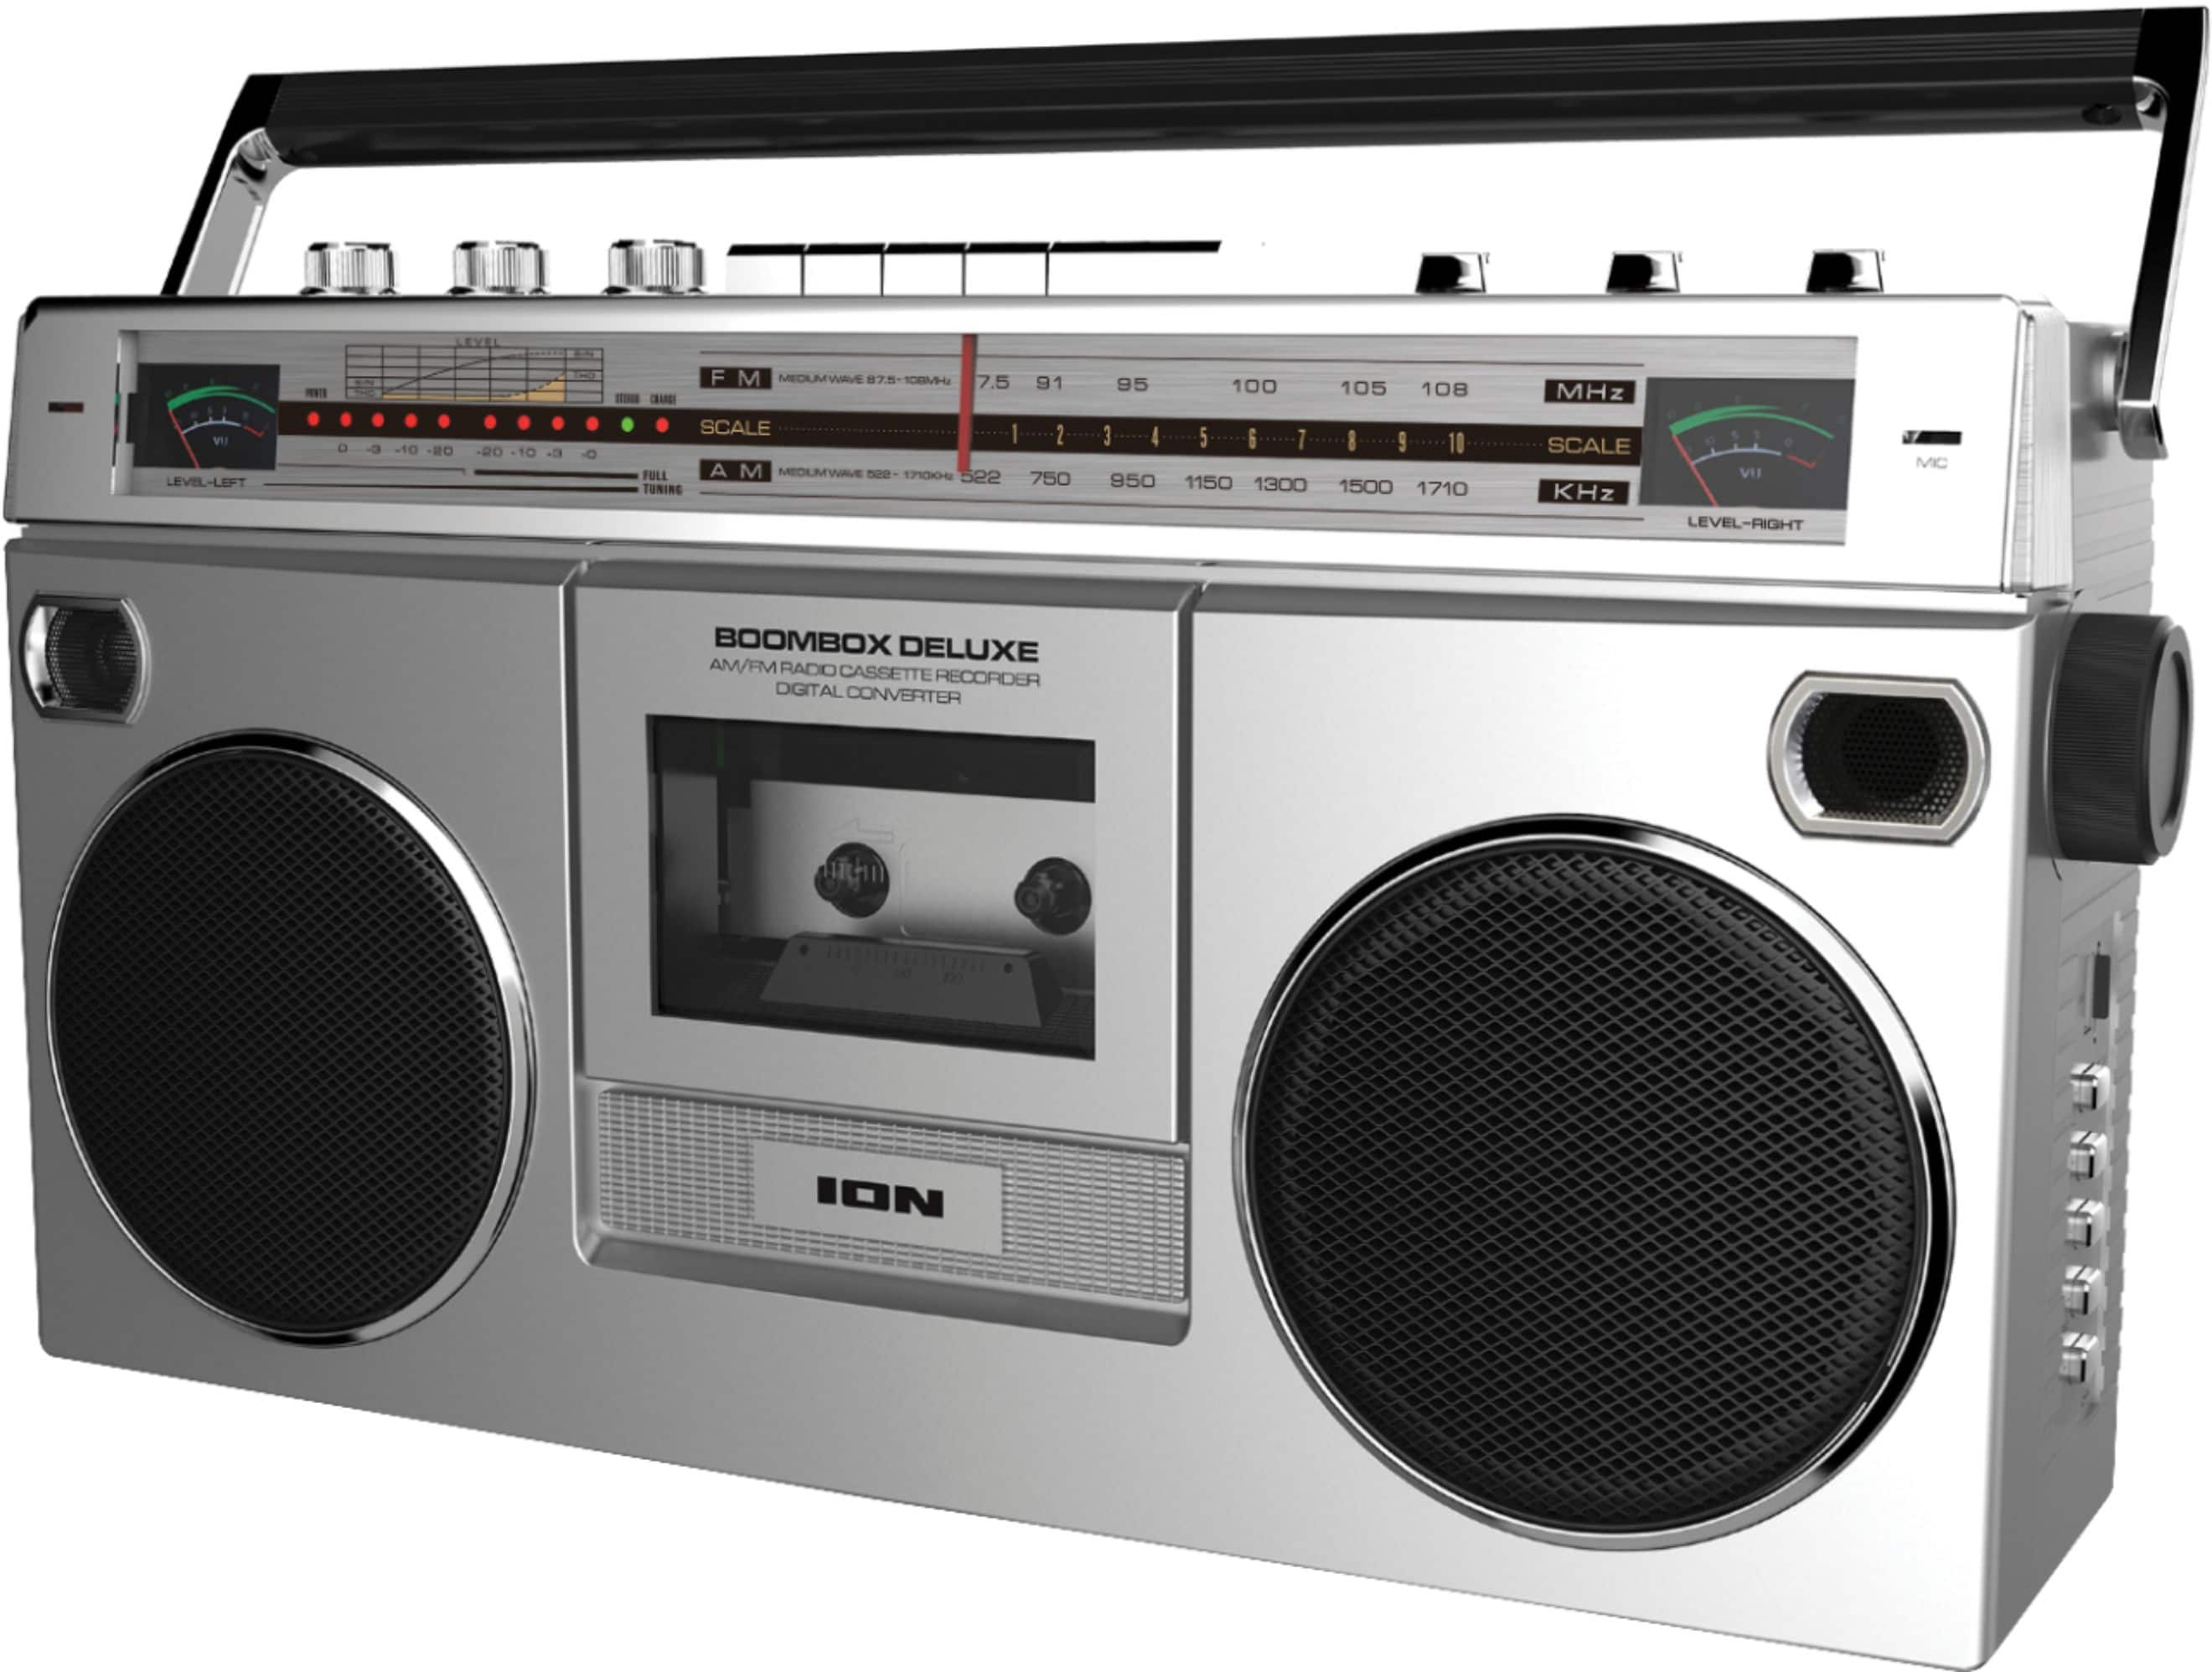 ION Audio - Boombox with AM/FM Radio - Silver $69.99 Free shipping